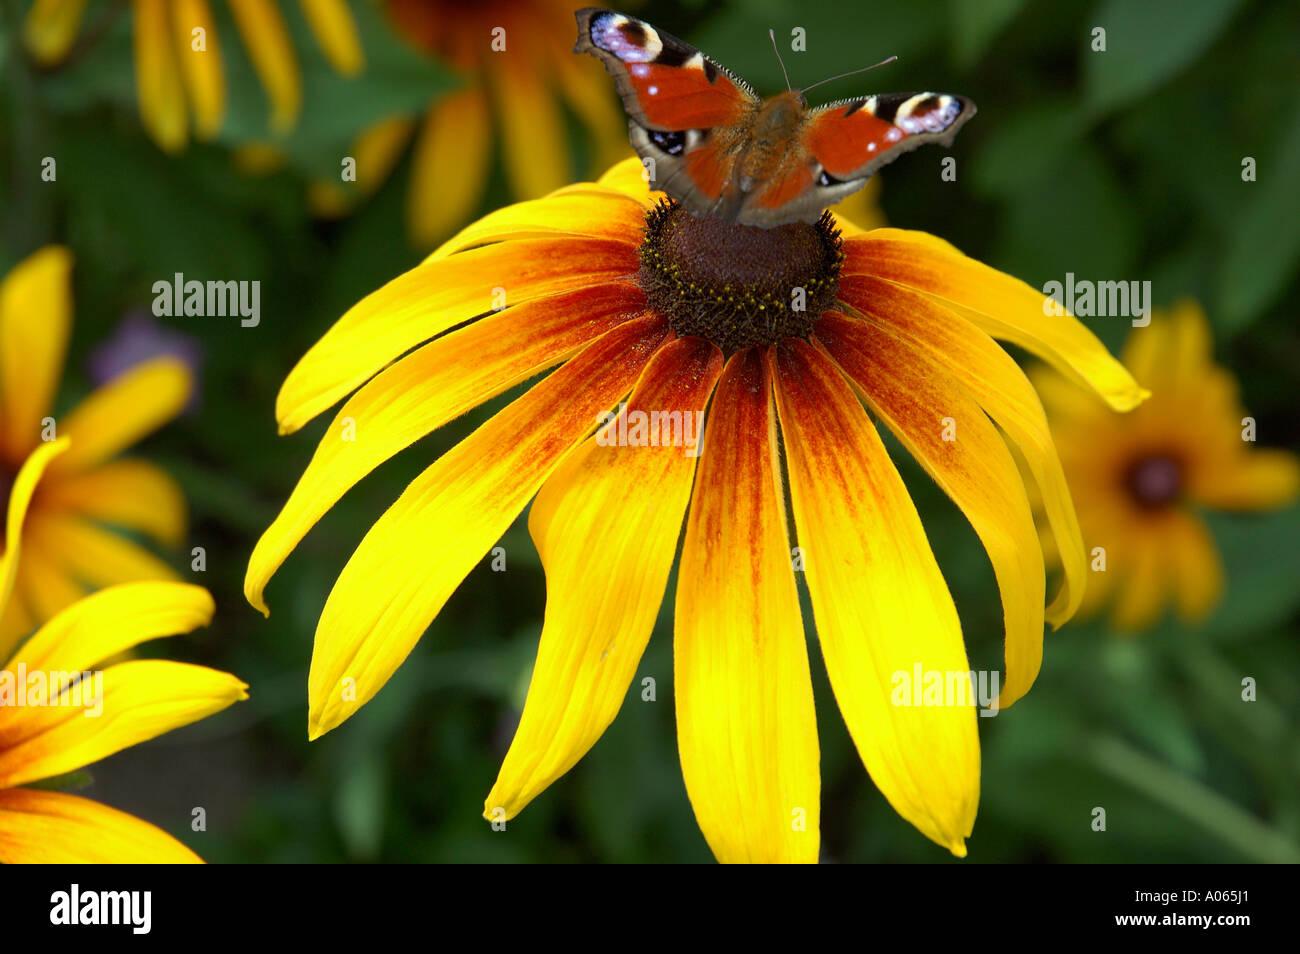 A butterfly rests on the anther of a yellow petaled flower peacock butterfly - Stock Image